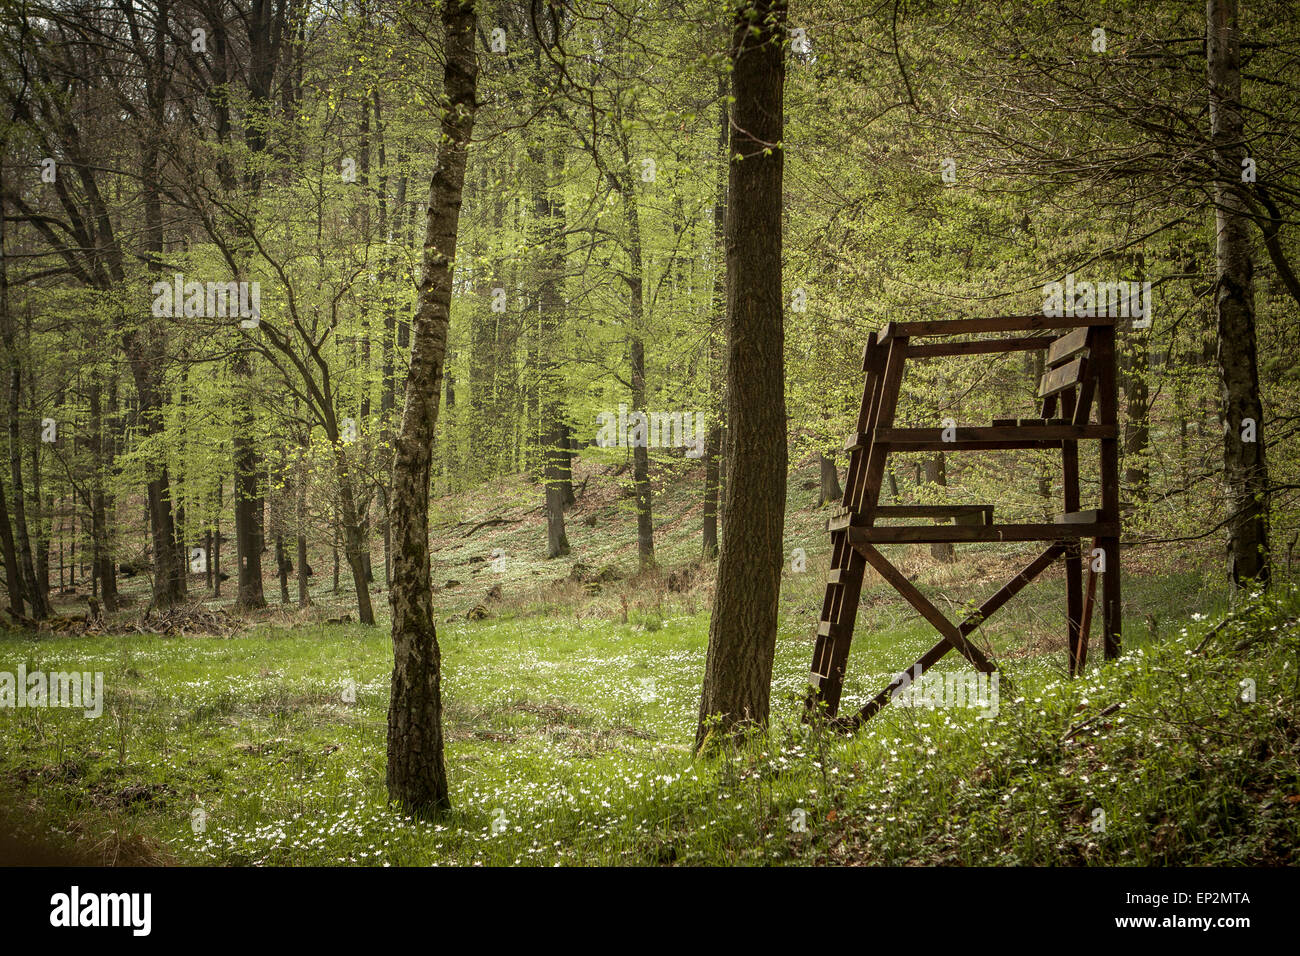 Germany, Brandenburg, Flaeming Heath, wood anemones growing in a forest - Stock Image